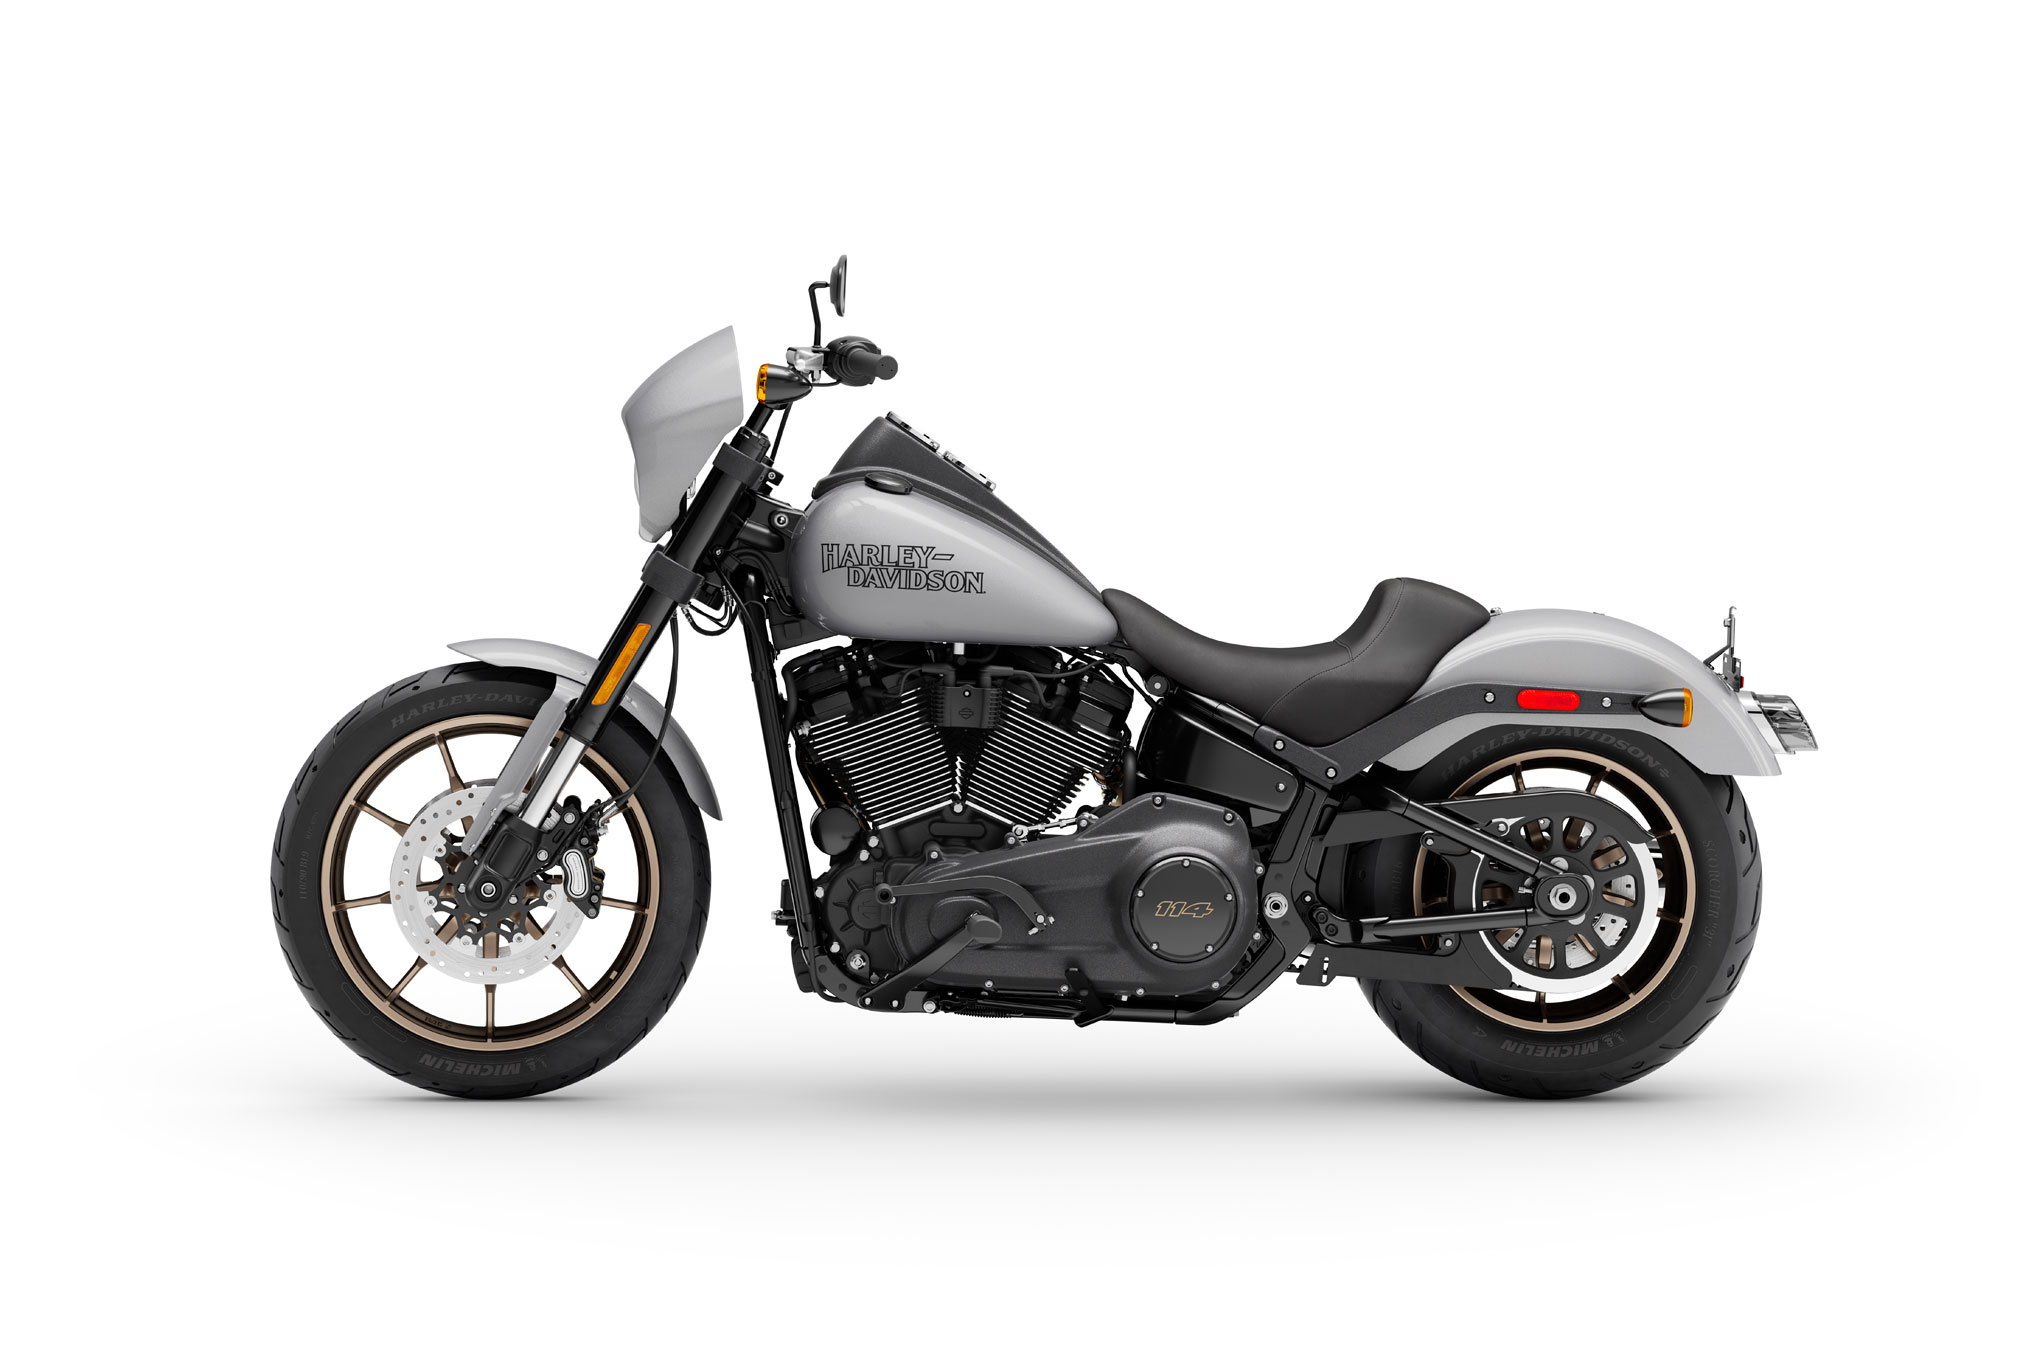 2020 Harley-Davidson Low Rider S Guide • Total Motorcycle